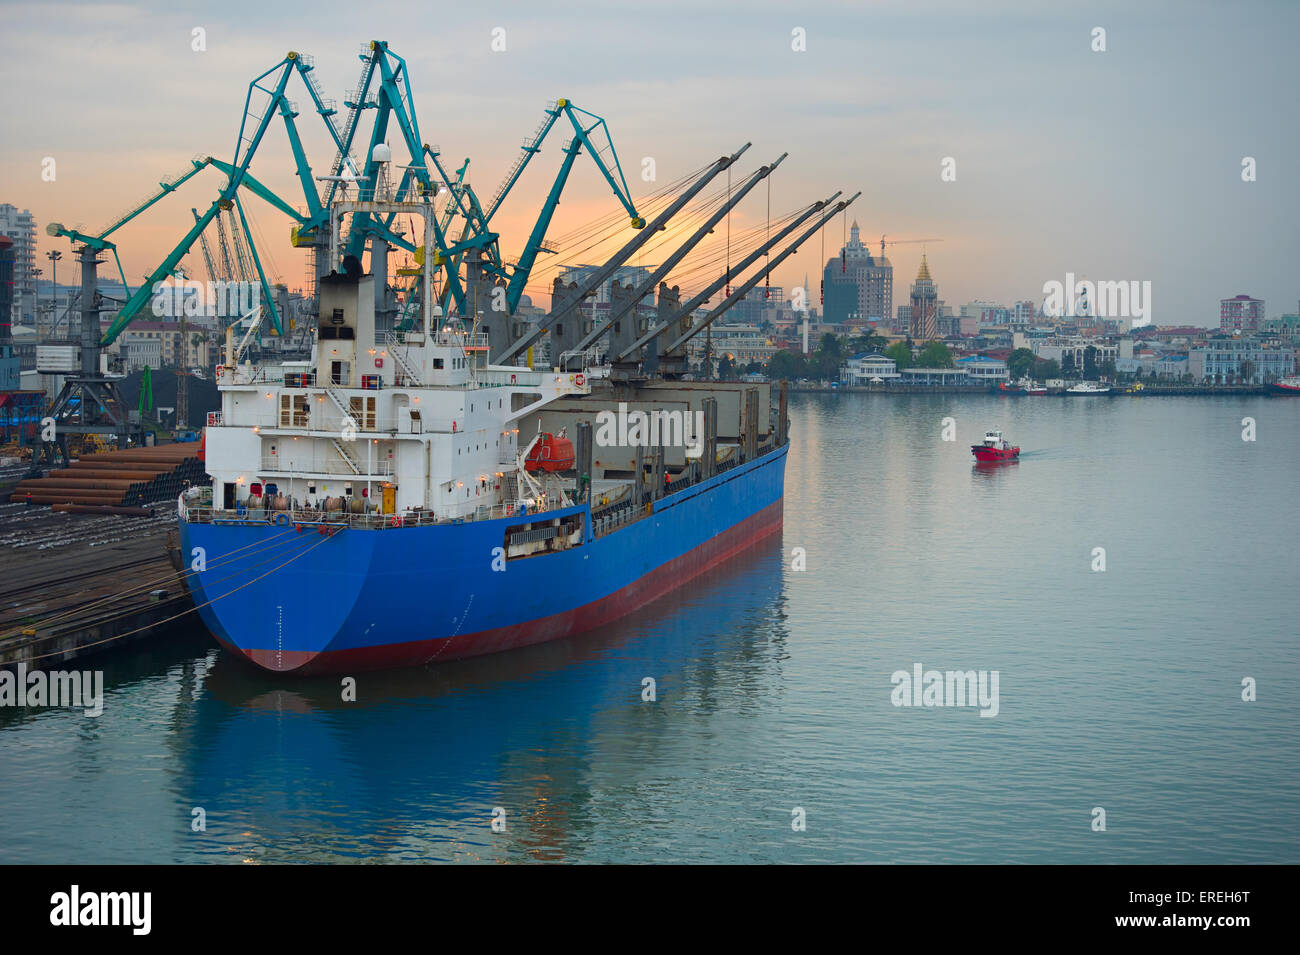 Industrial ship in Batumi port at dusk. Georgia - Stock Image